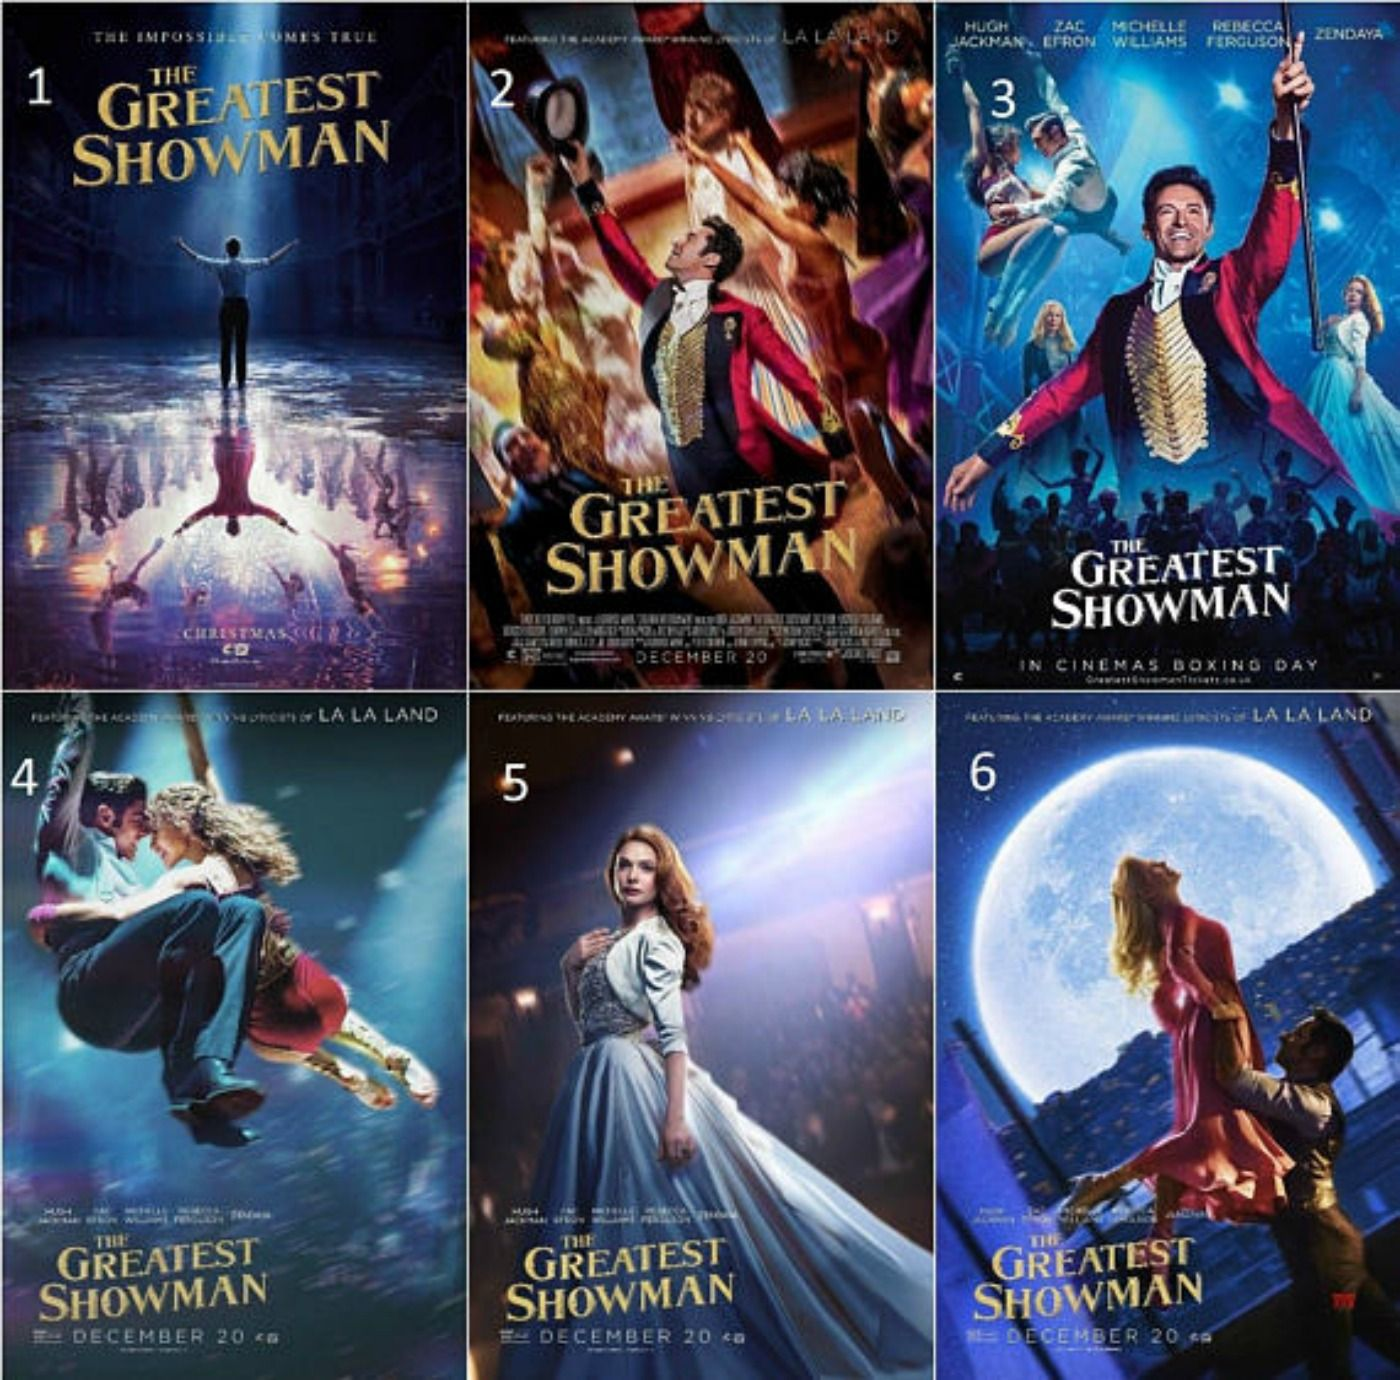 Poster found on Etsy - The Greatest Showman Movie Poster - Michael ...